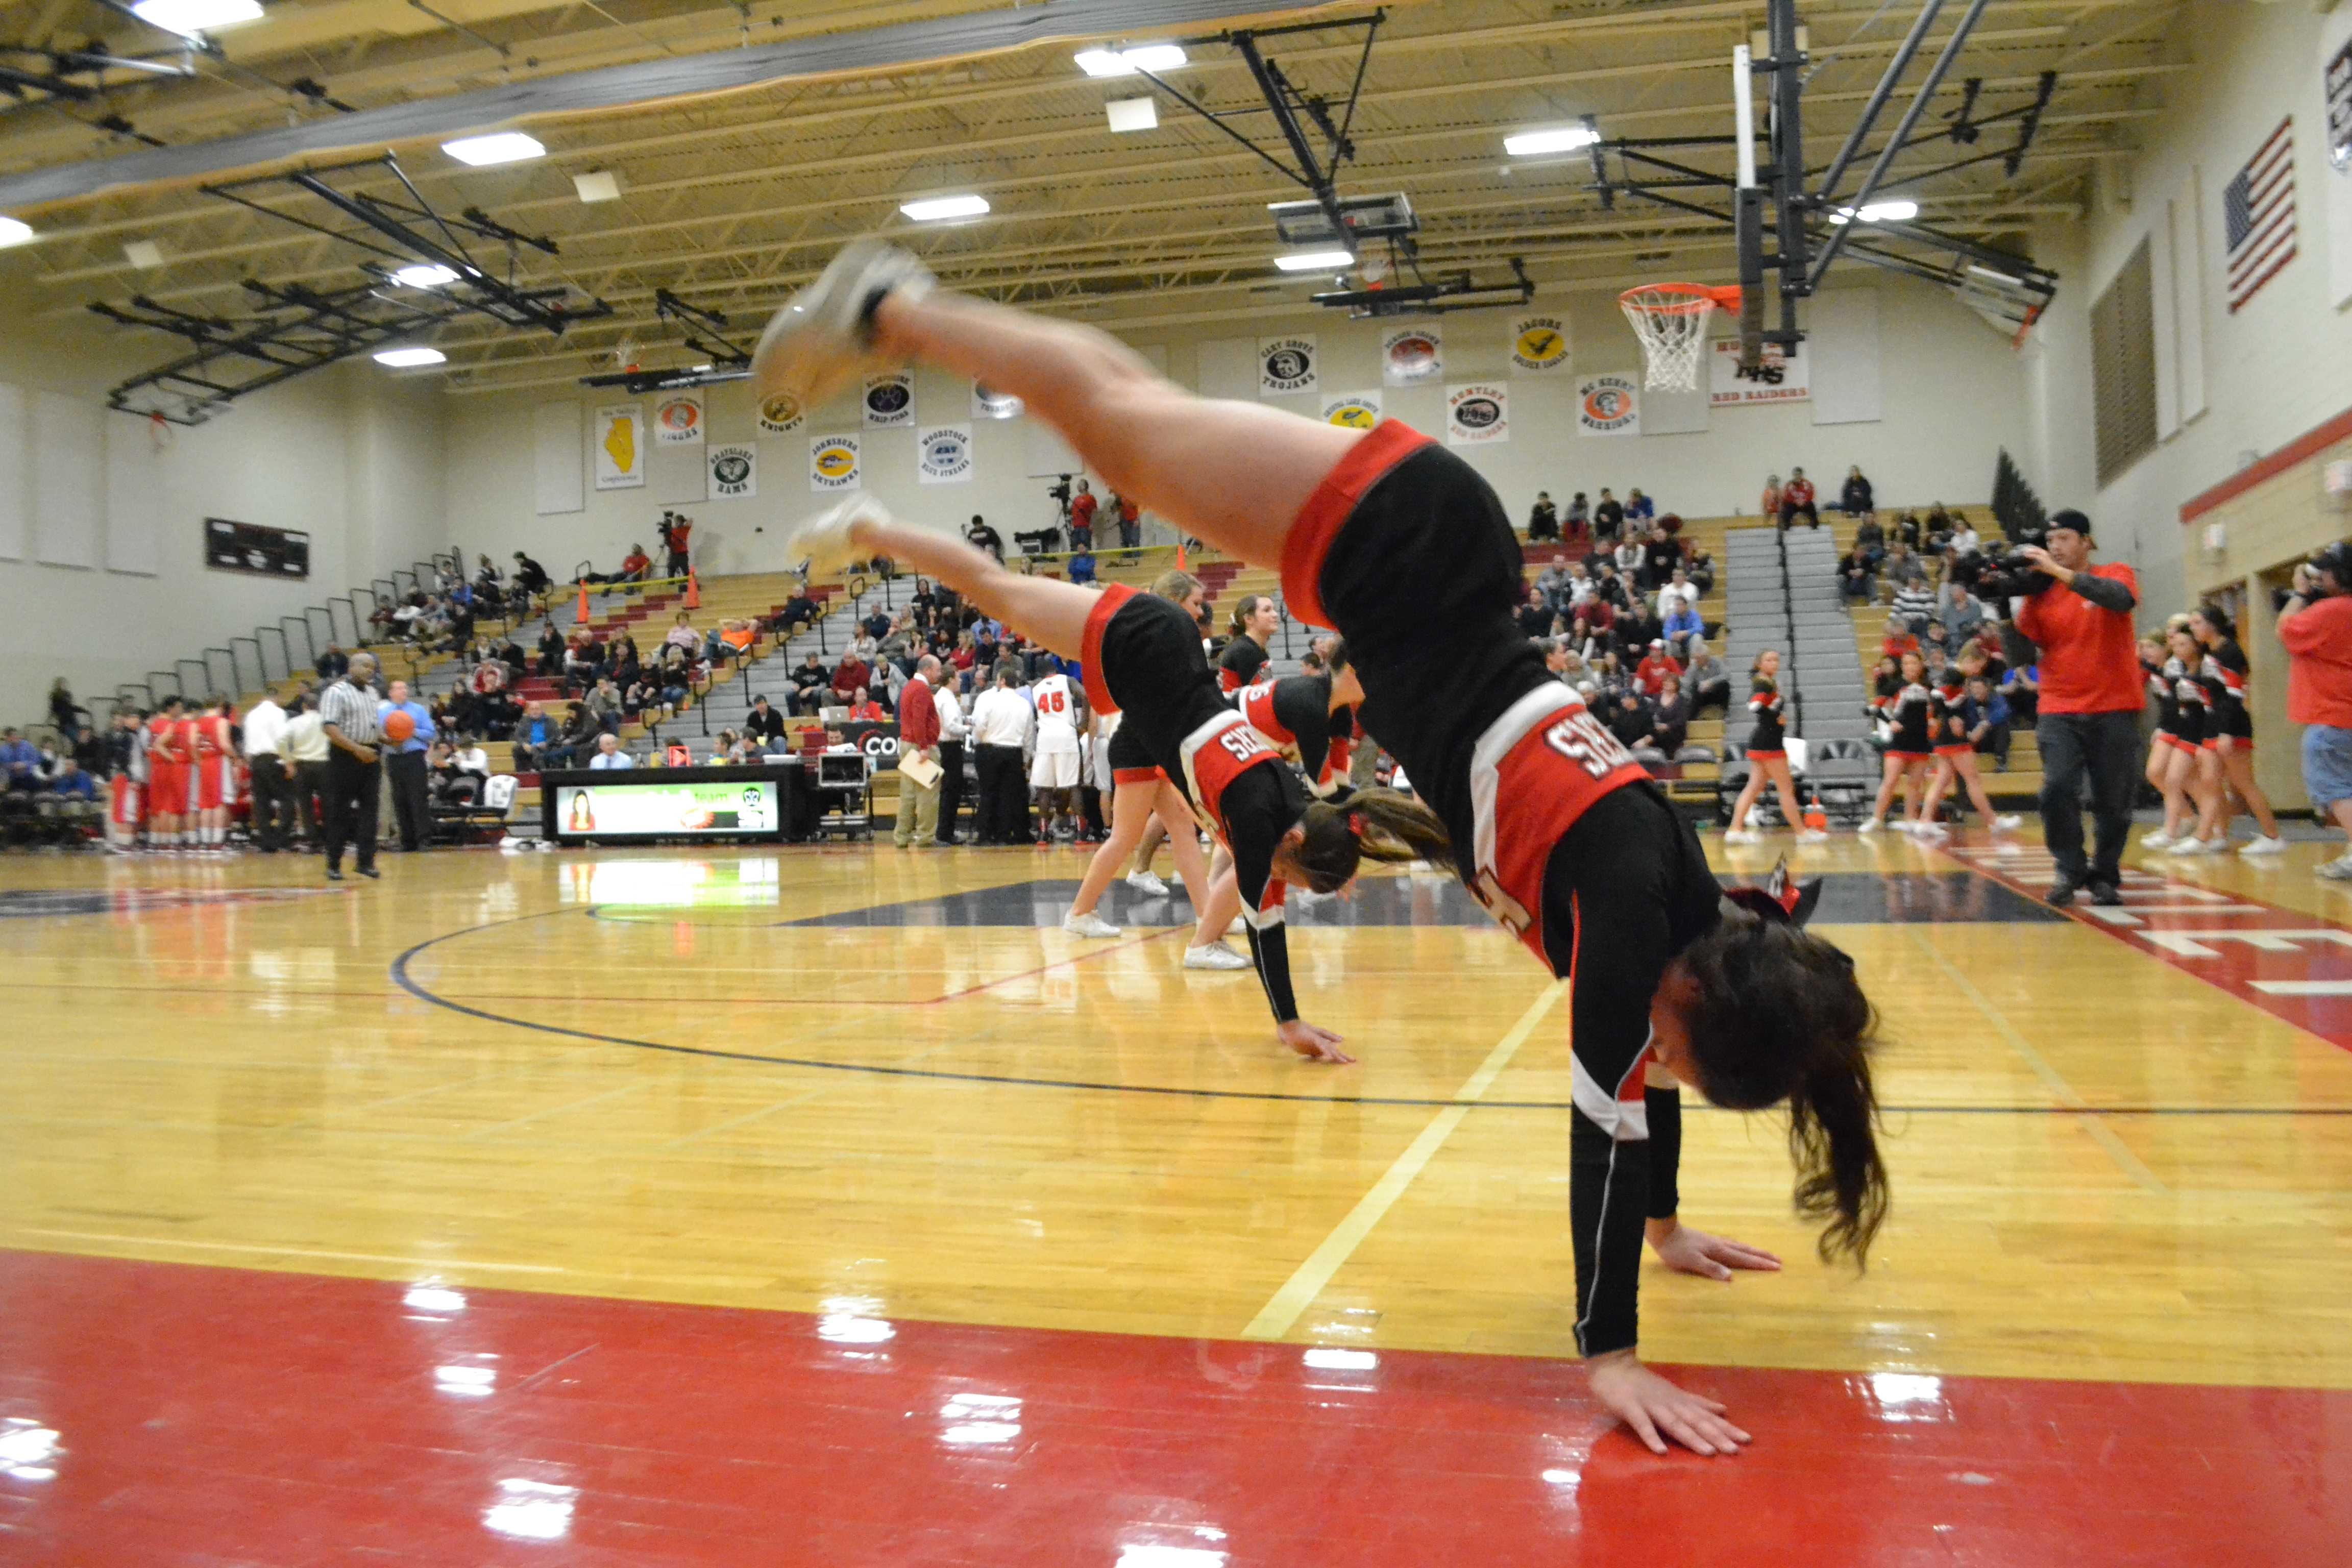 Tryouts for next year's future cheerleading team were held this past week. Motivation and team loyalty serve as big factors for the six coaches and IHSA judges during tryouts (M. Krebs).